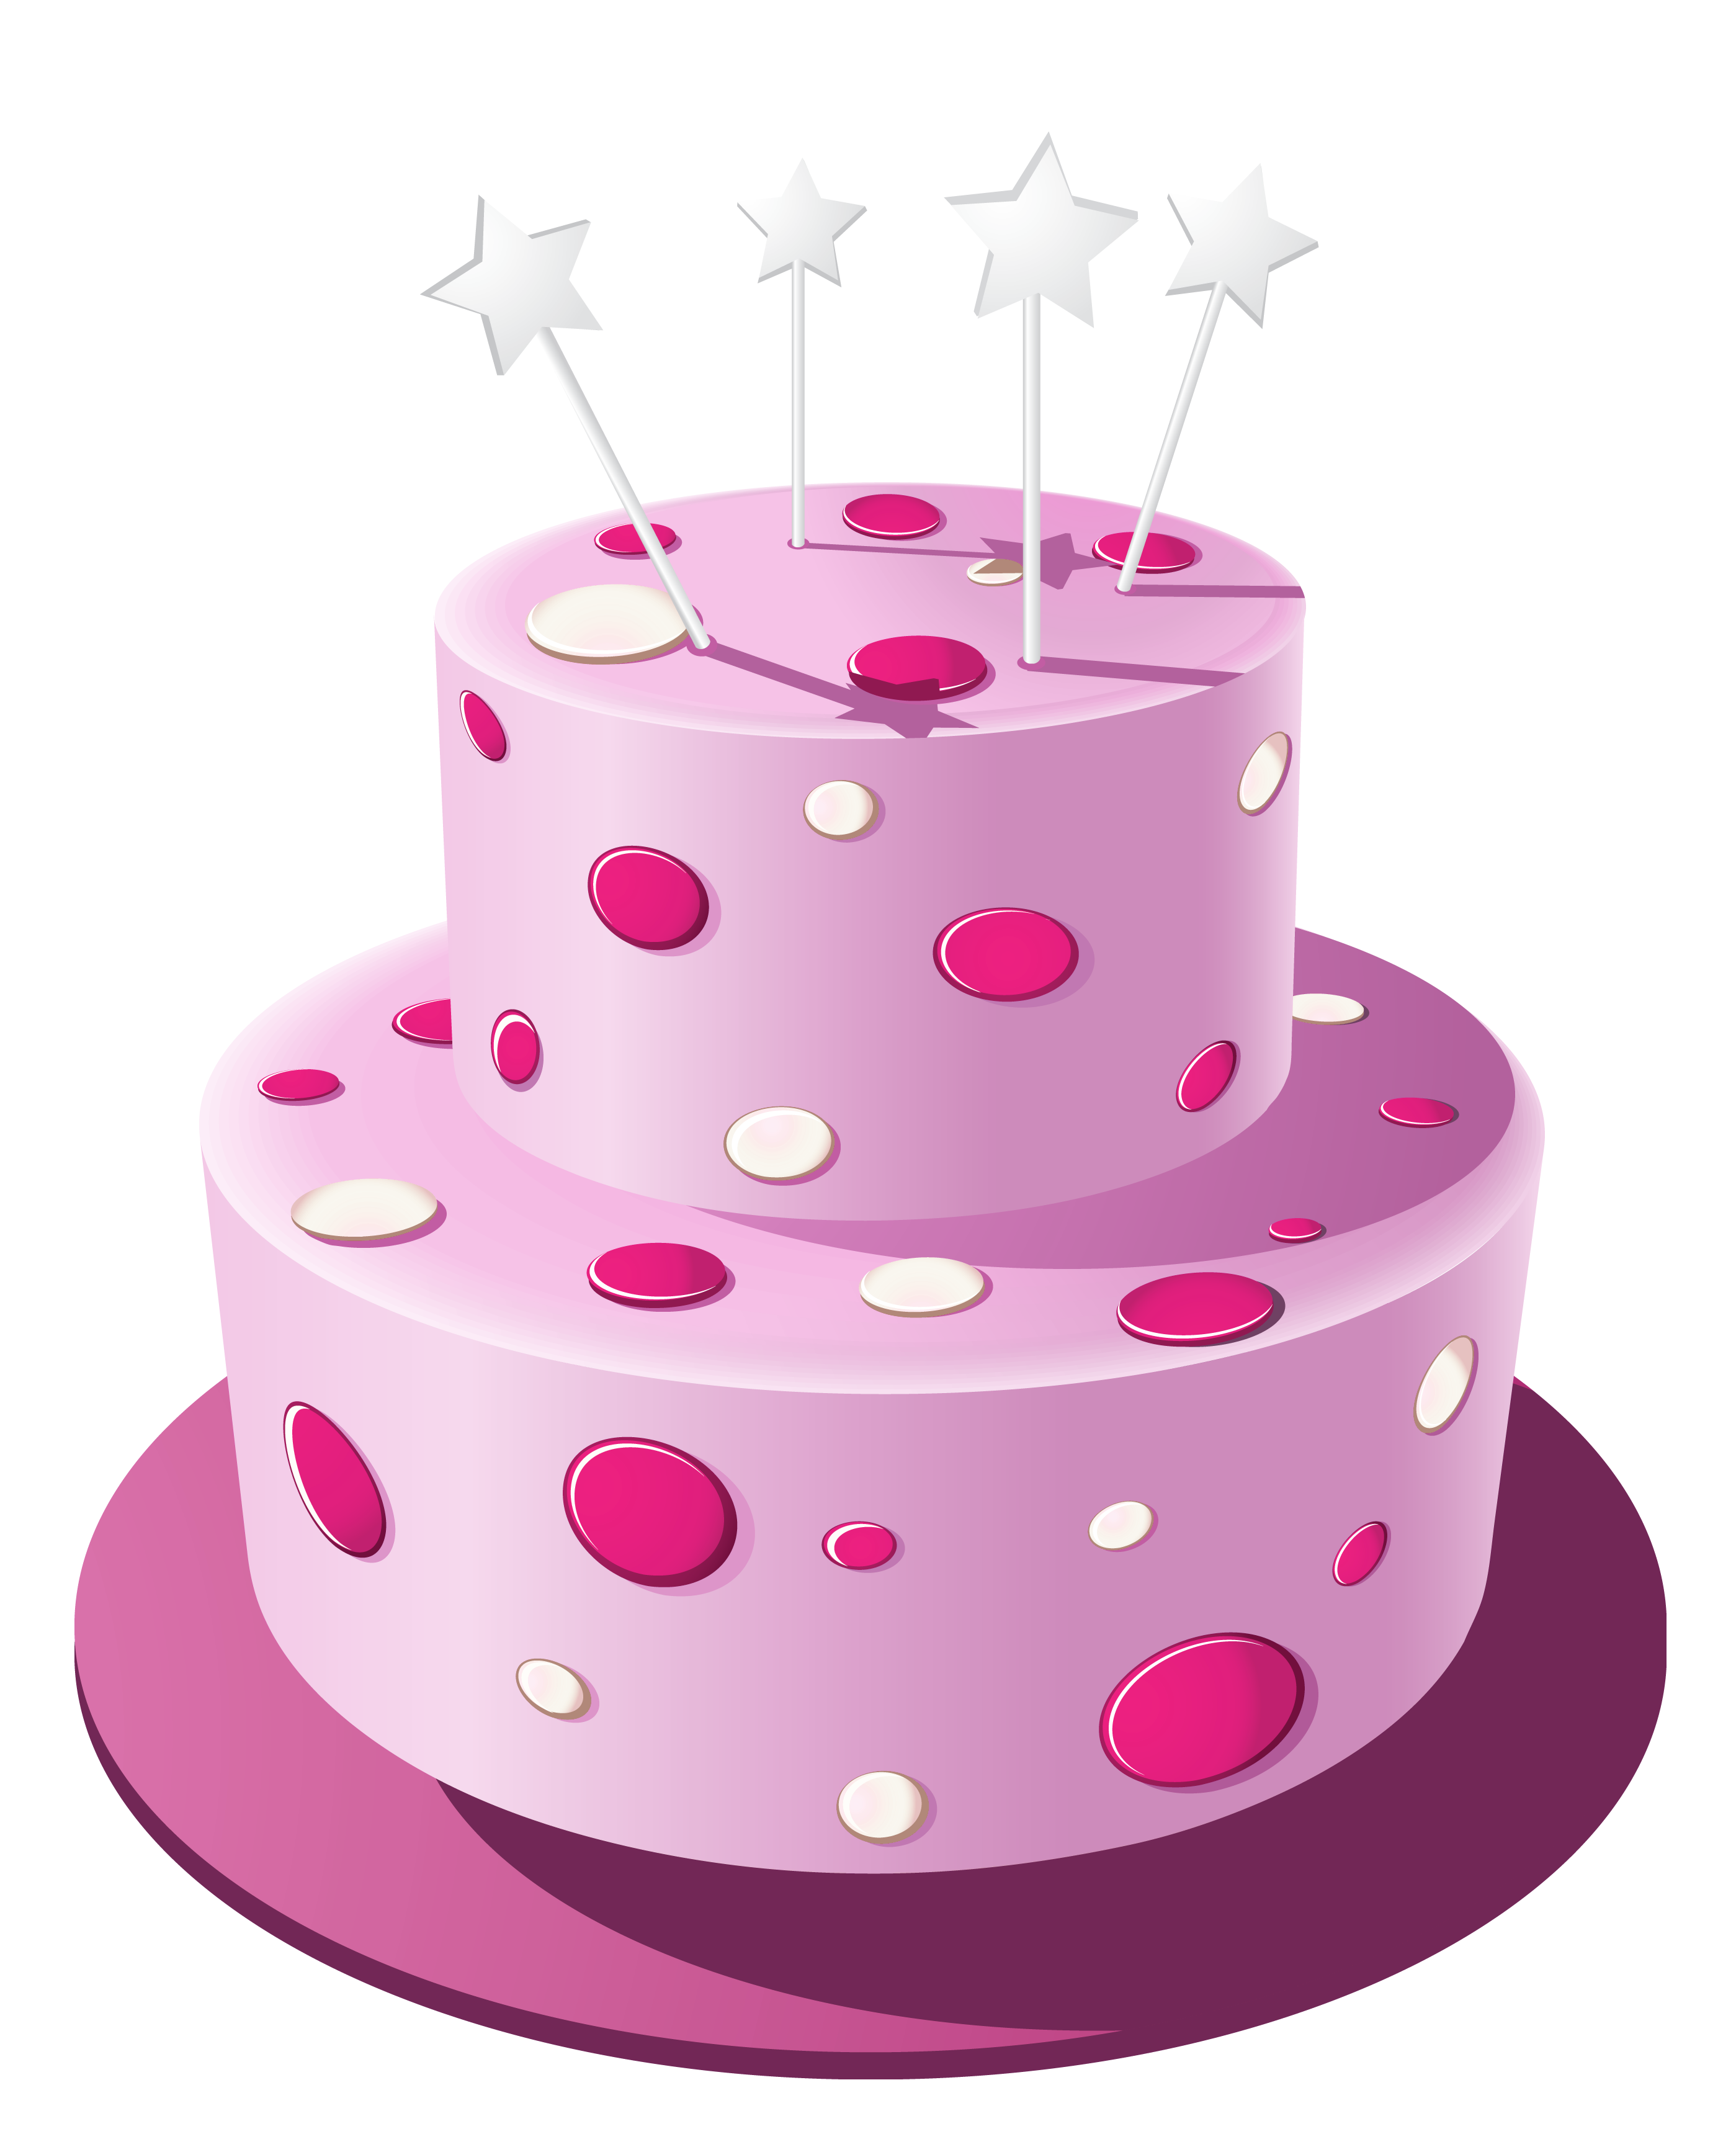 Pink Cake PNG Clipart Image.